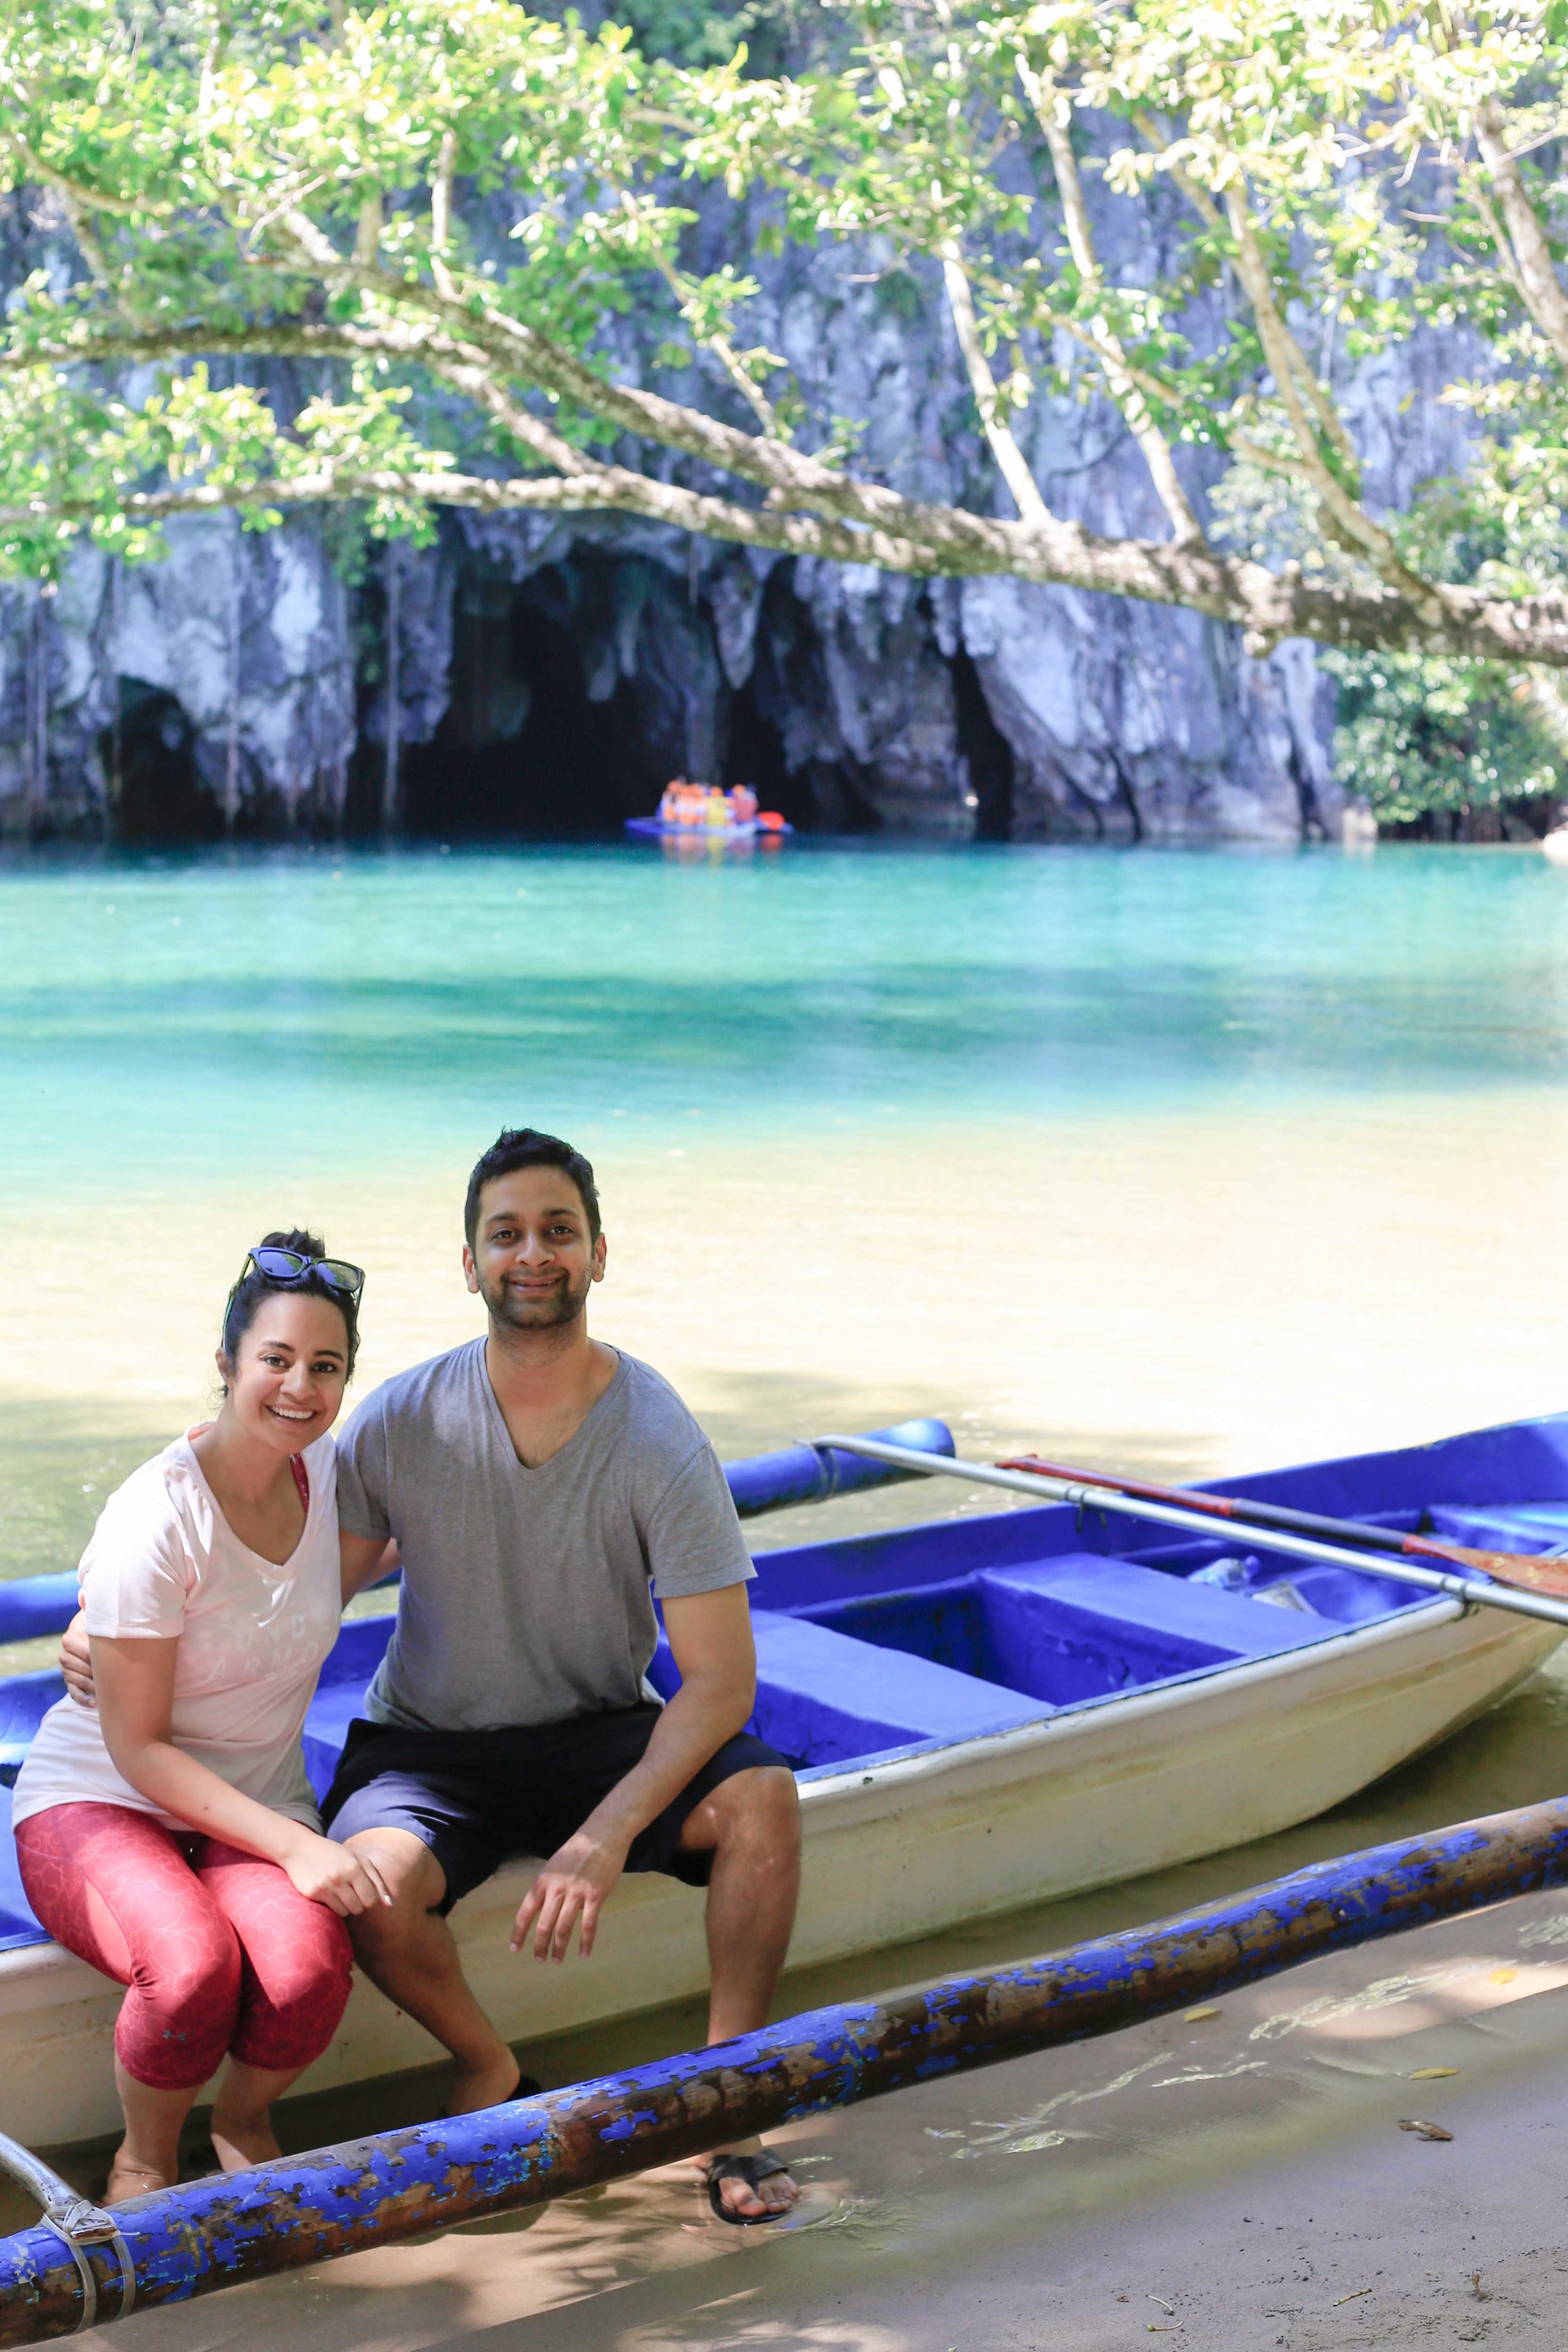 Just behind us is the entrance to the underground river!